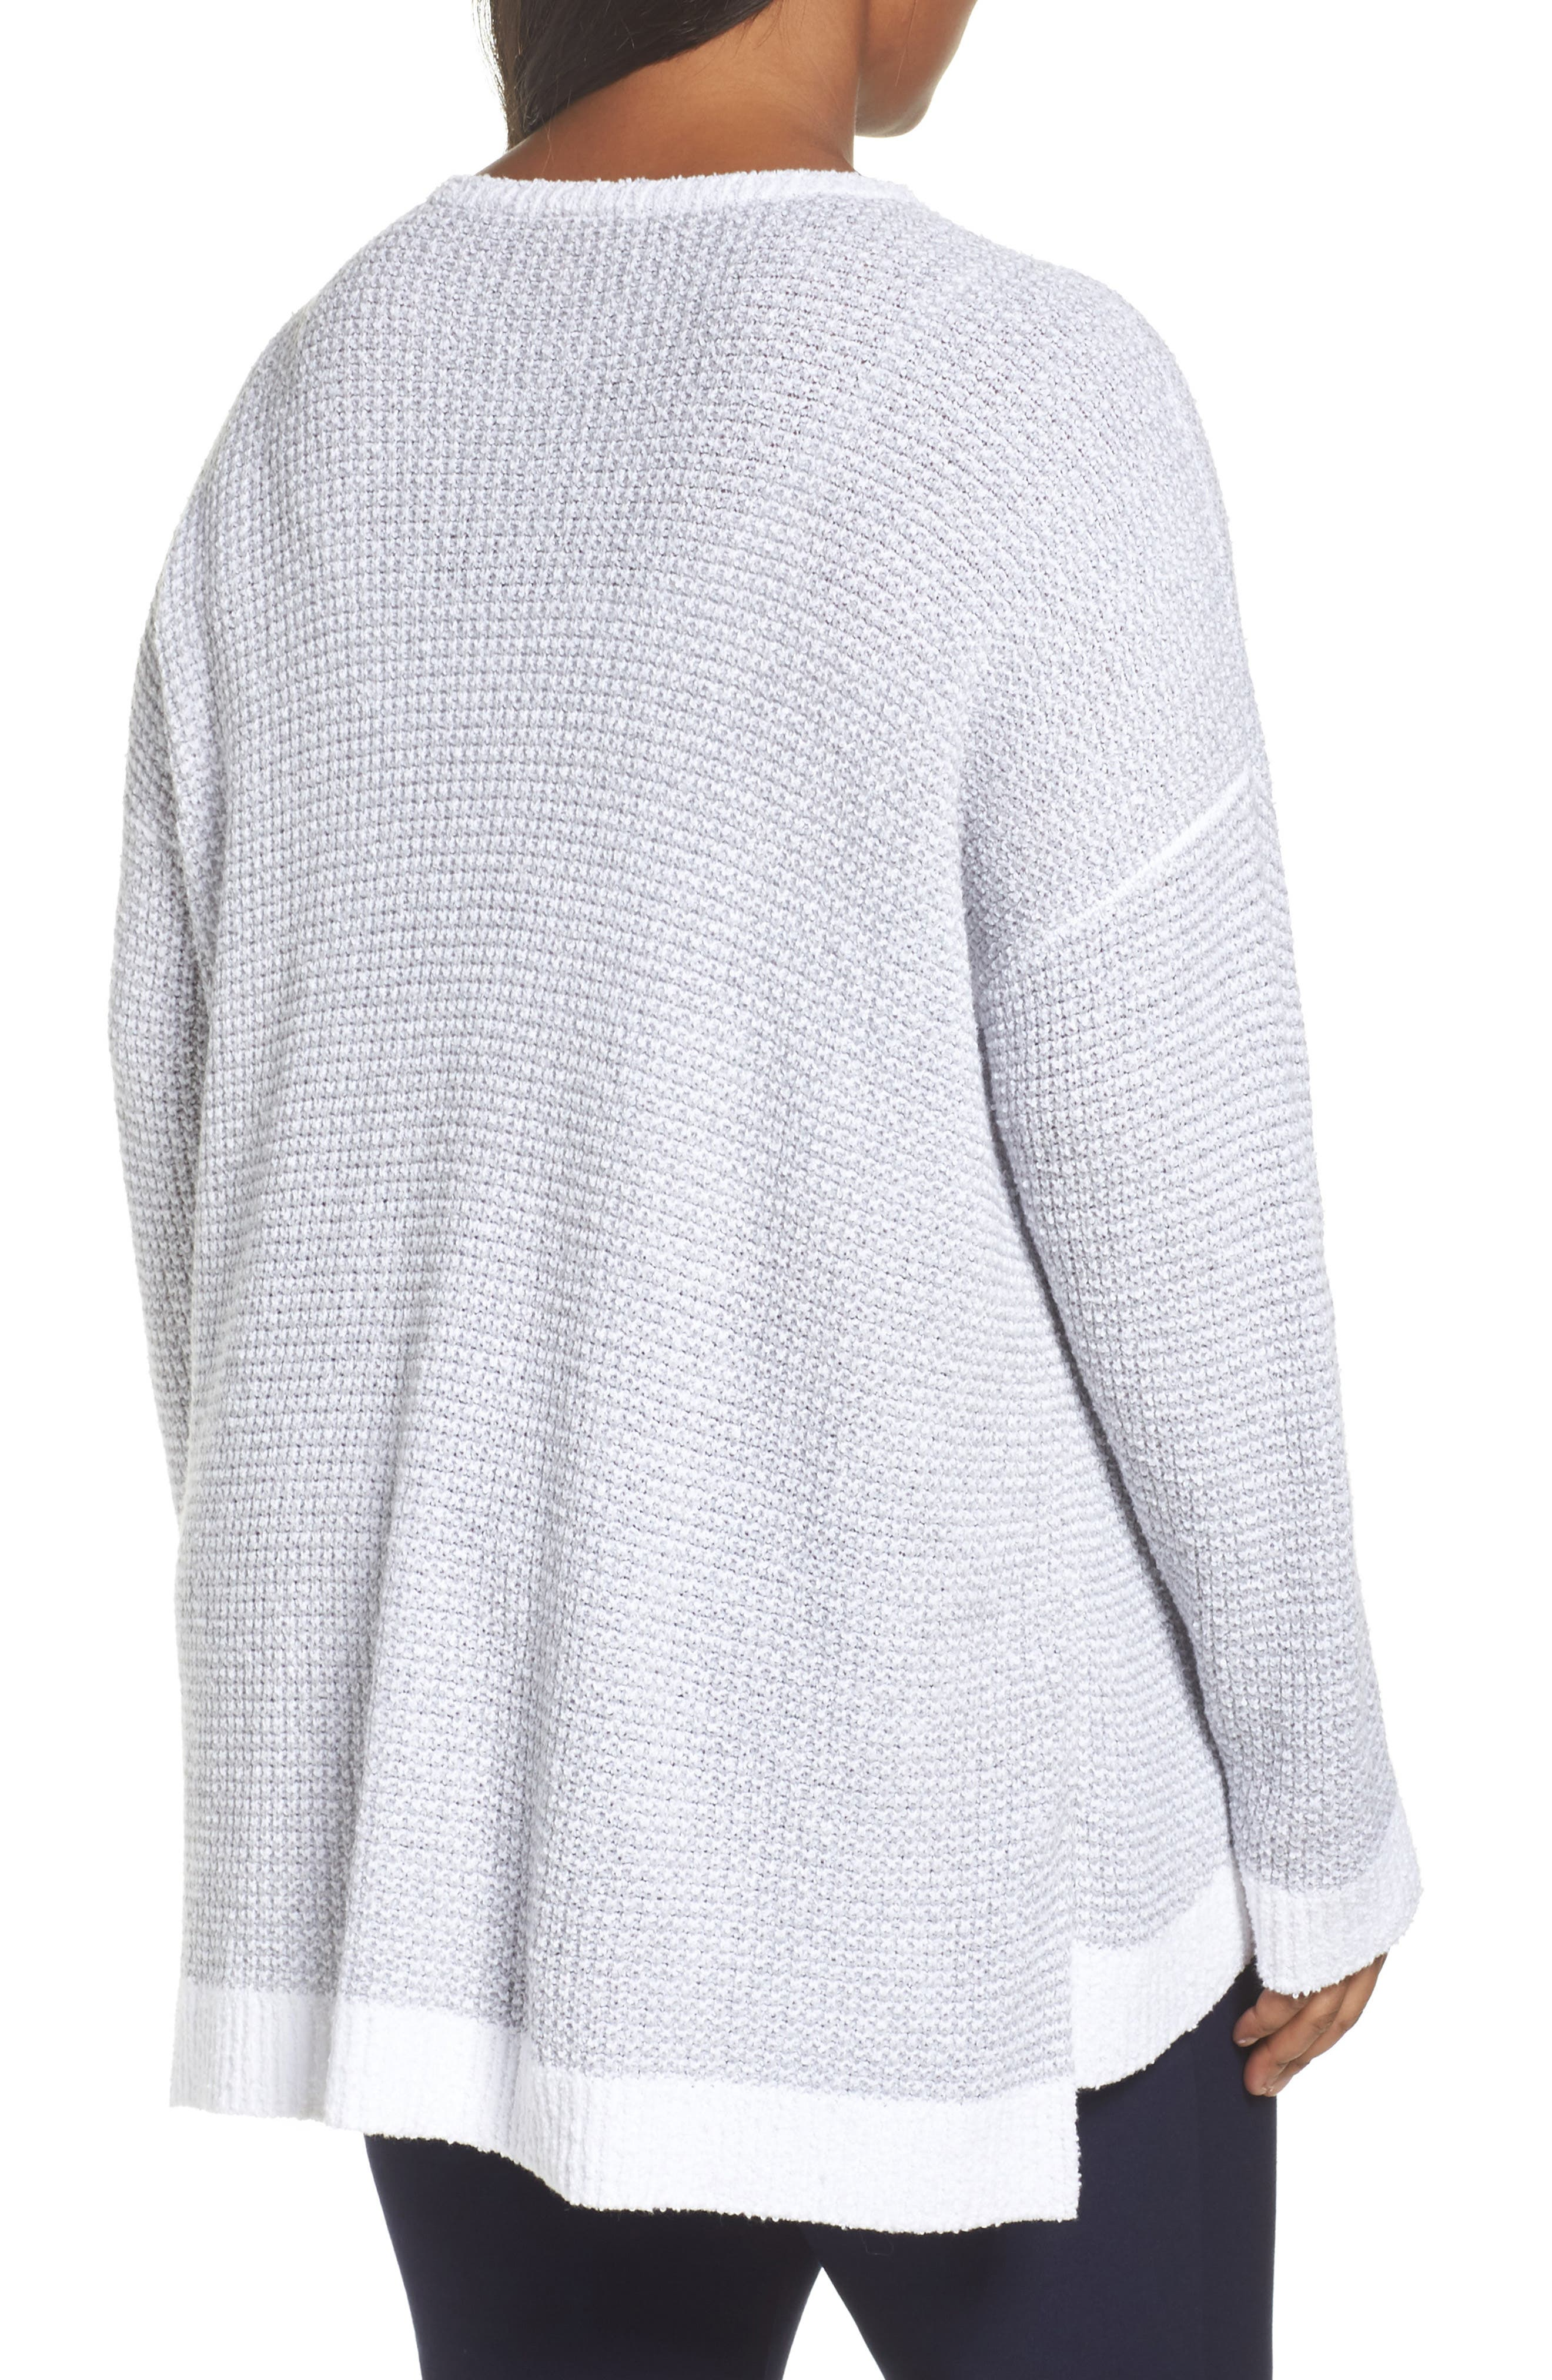 Waffled Organic Cotton Sweater,                             Alternate thumbnail 2, color,